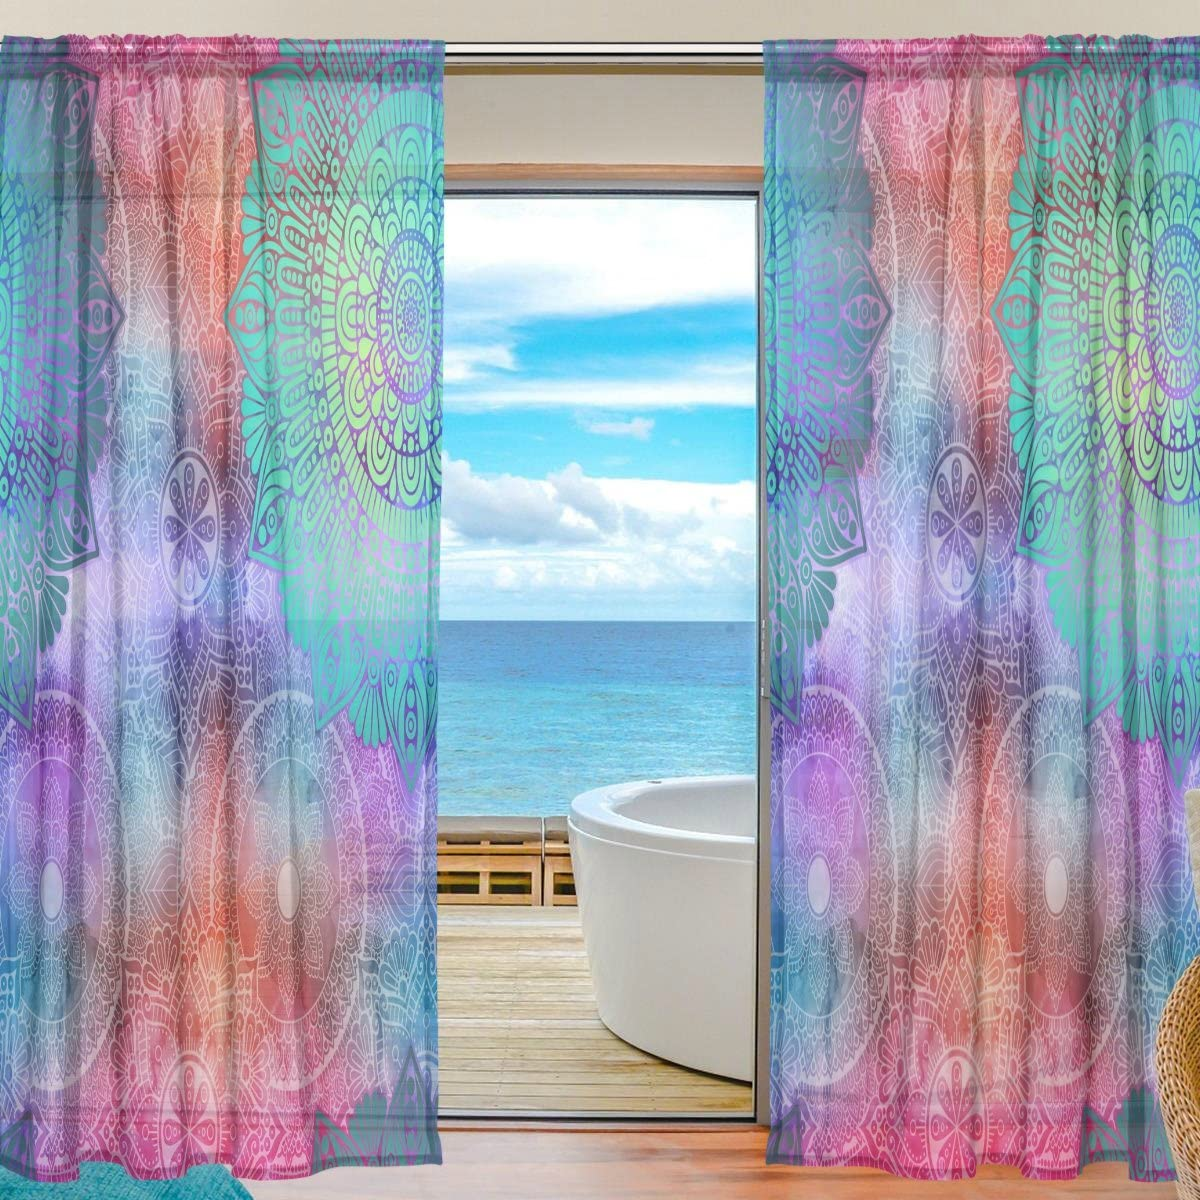 TropicalLife 2 Piece Color Ethnic Mandala Pattern Sheer Voile Window Curtain Panels 55 x 84 Inch Length for Bedroom Living Room Kids Room Kitchen Modern Panels Indoor Decoration